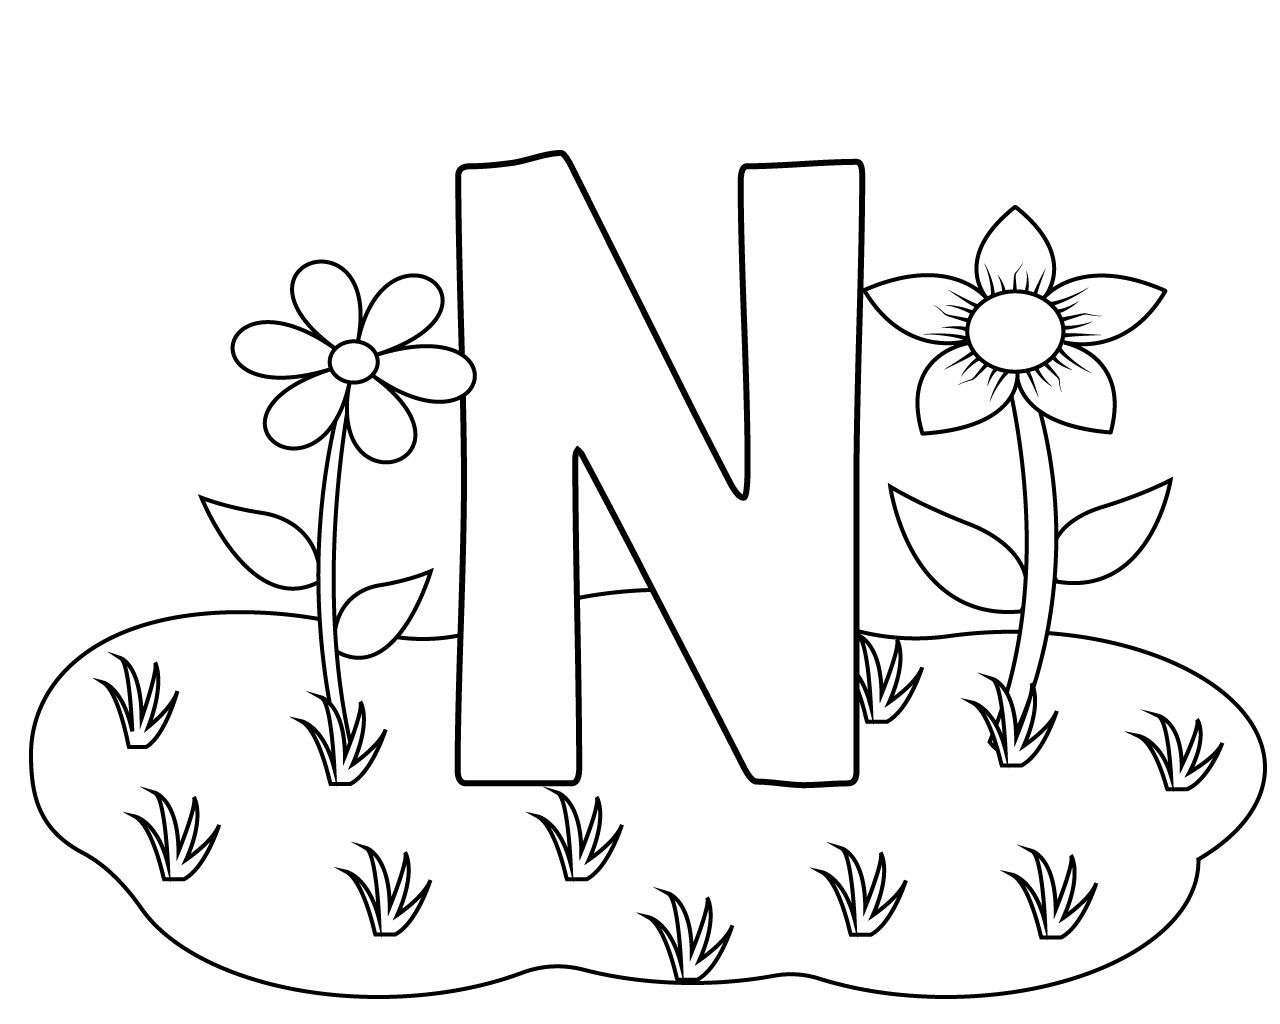 letter n coloring pages for adults black line letter n with doodle floral ornament coloring letter adults pages coloring for n